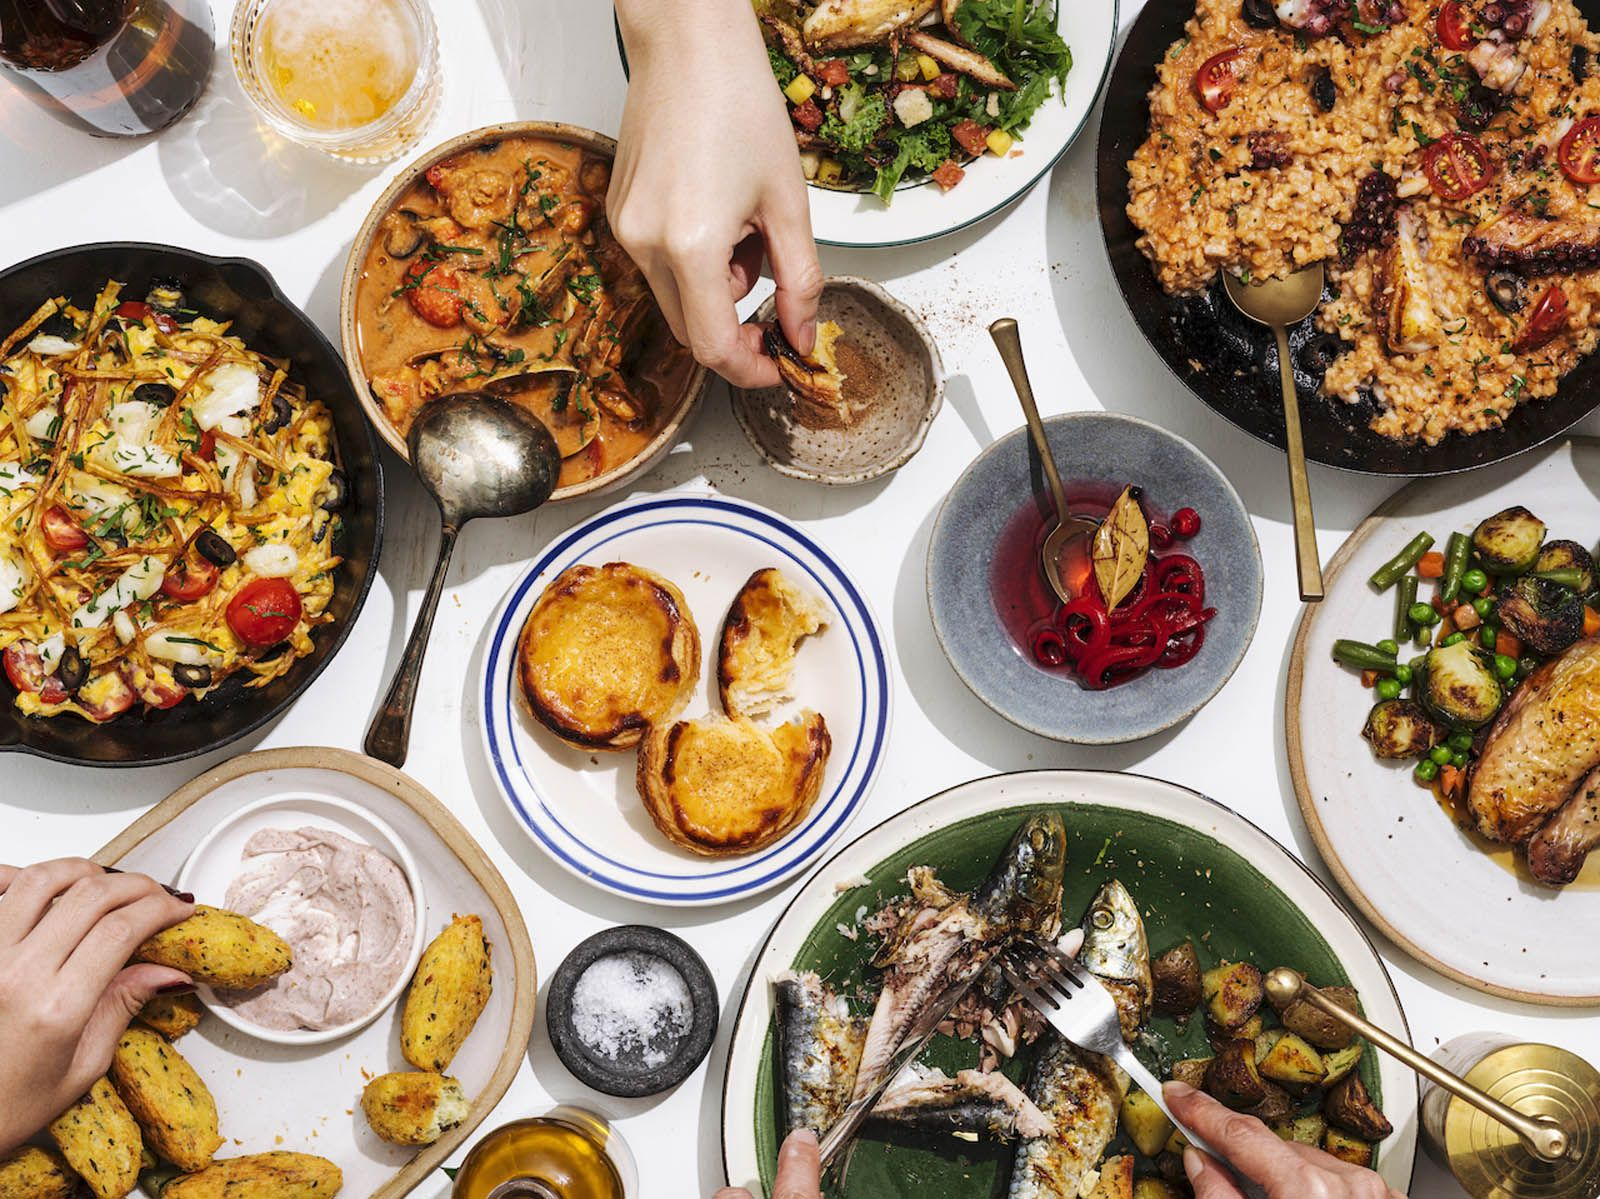 Food Delivery in Singapore: How to Have a Portuguese Feast at Home